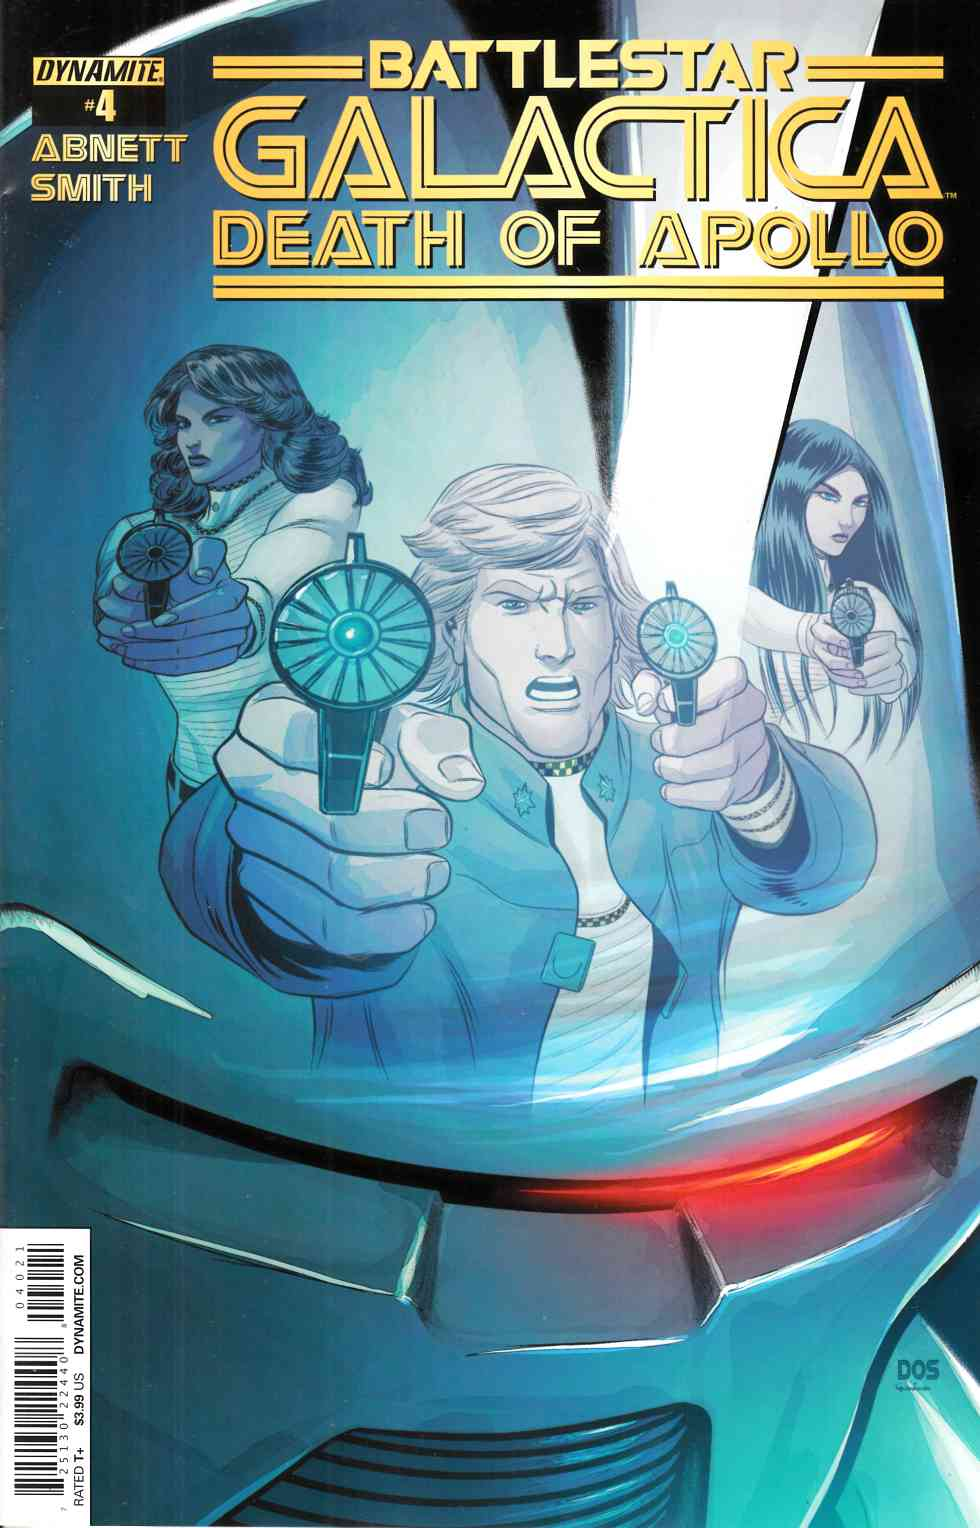 Battlestar Galactica Death of Apollo #4 Cover B- Smith [Dynamite Comic]